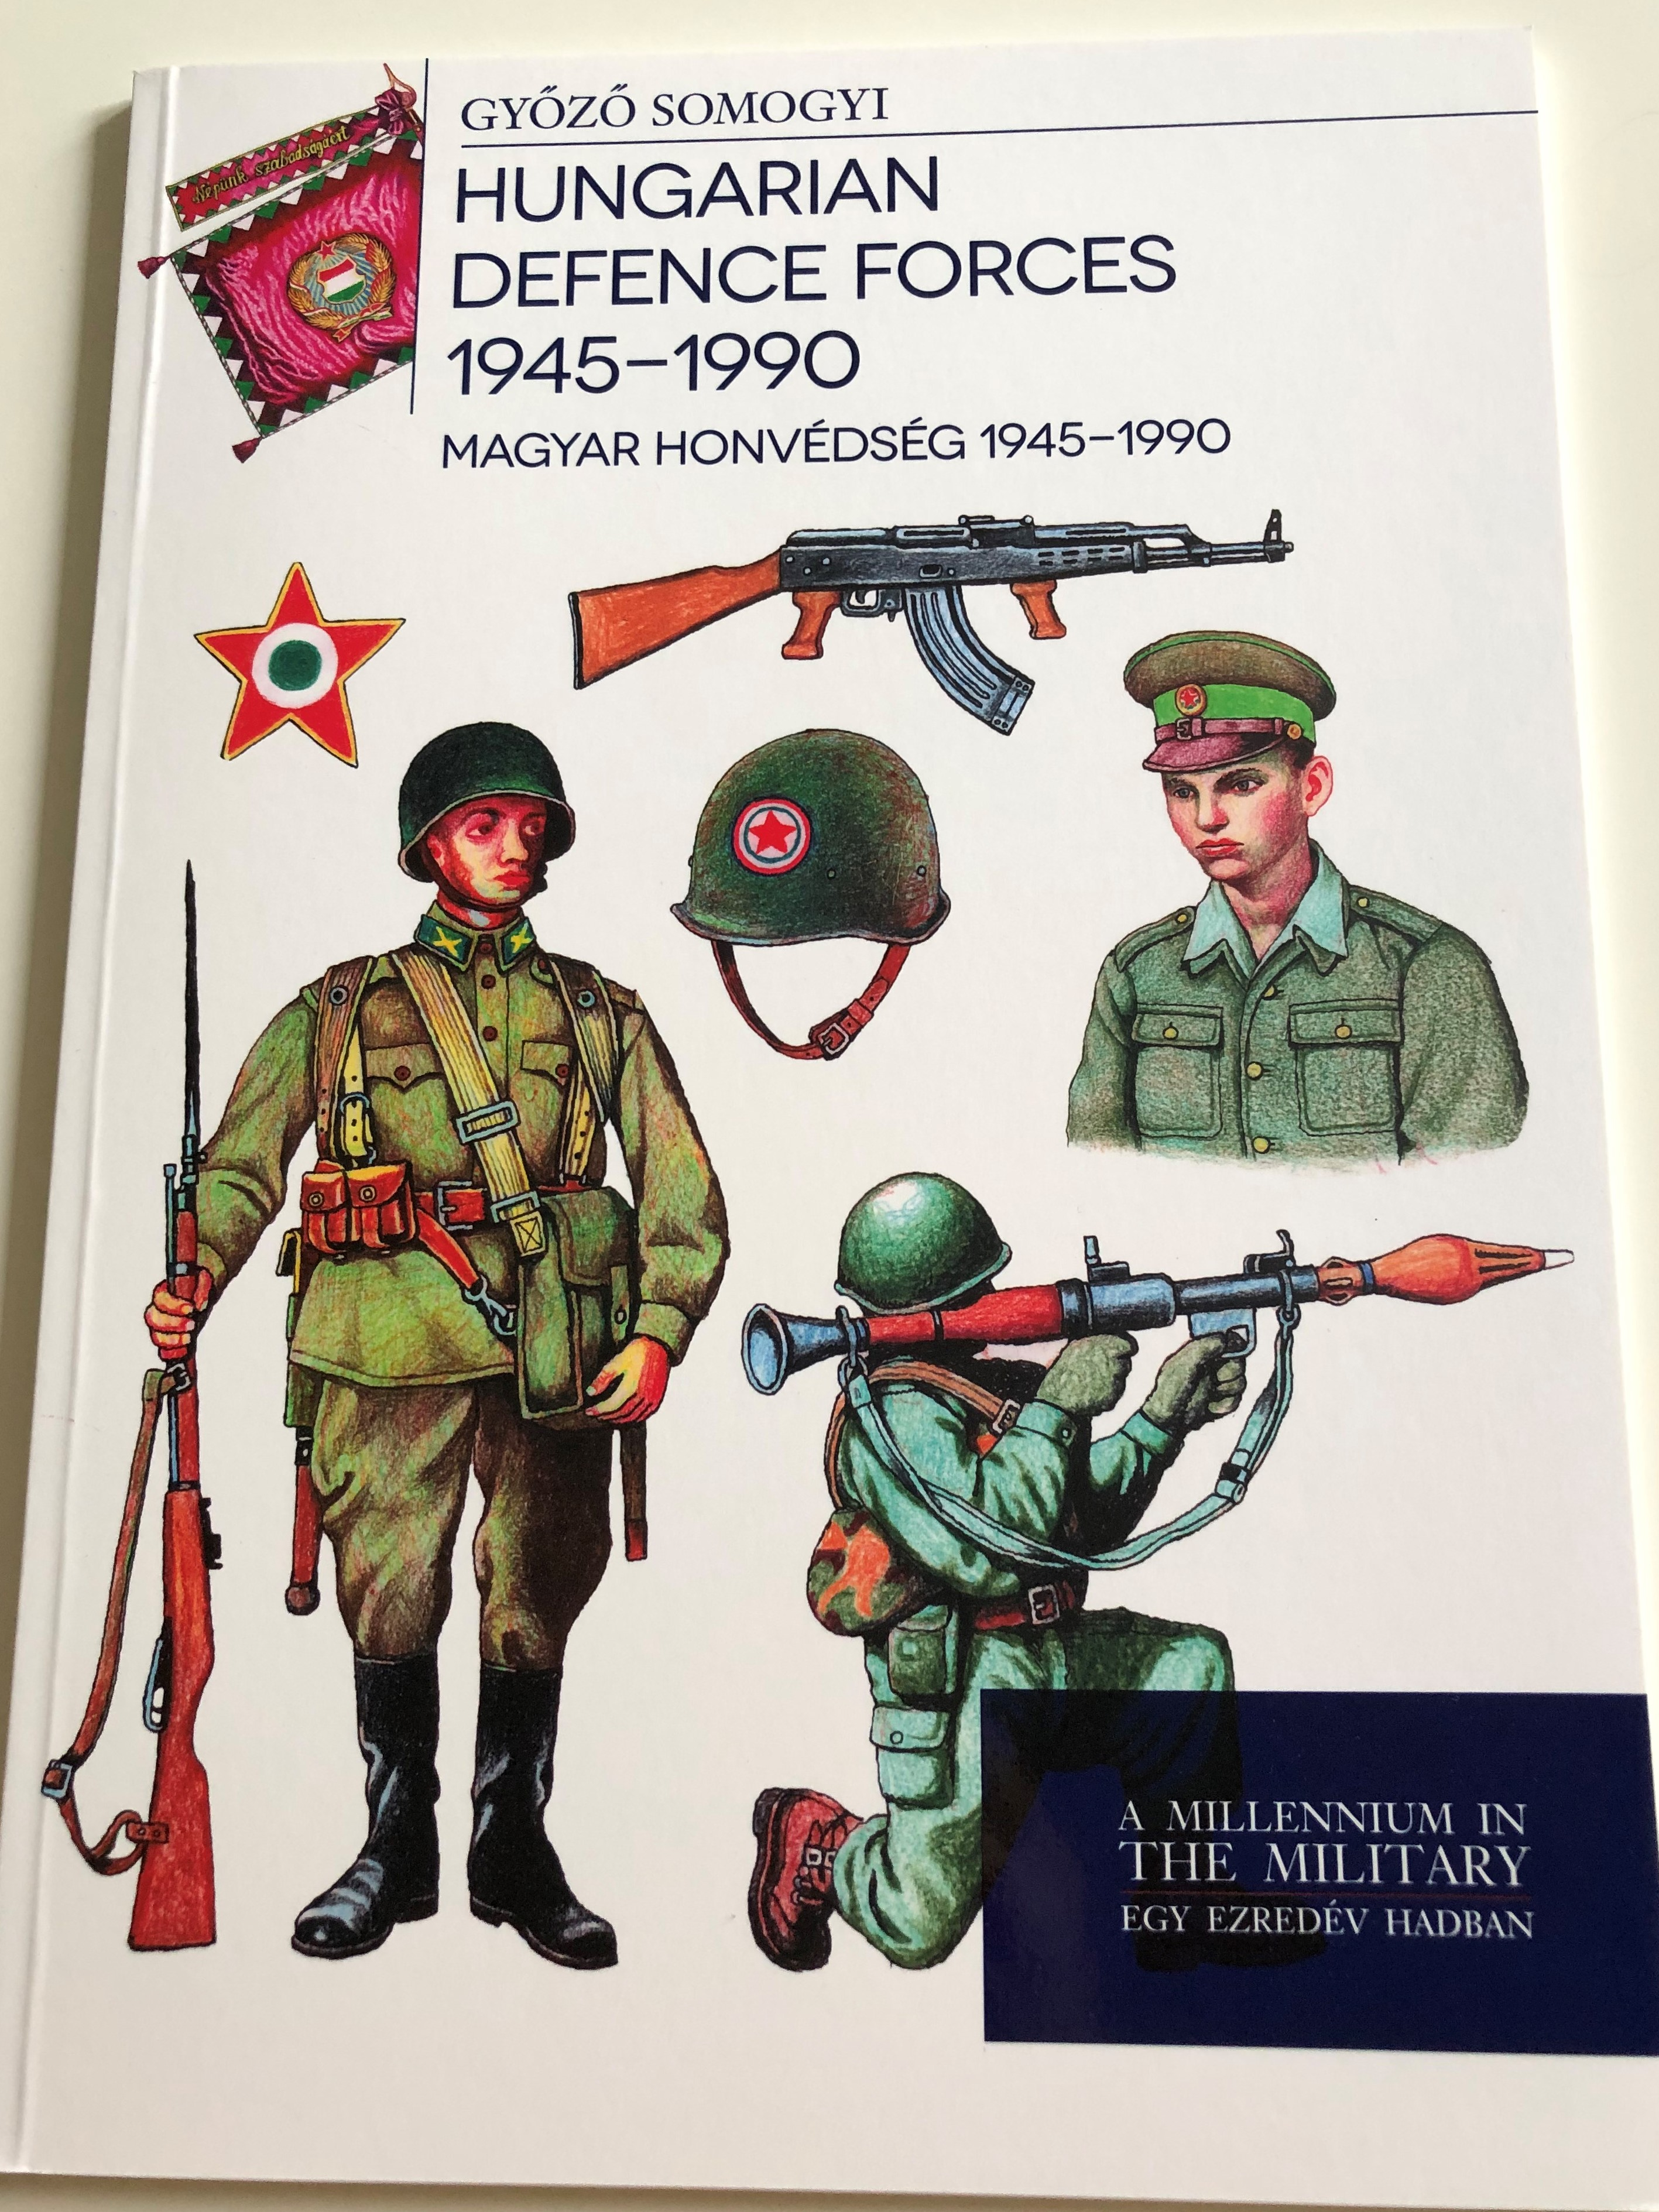 hungarian-defence-forces-1945-1990-by-gy-z-somogyi-magyar-honv-ds-g-1945-1990-a-millennium-in-the-military-egy-ezred-v-hadban-paperback-2019-hm-zr-nyi-1-.jpg